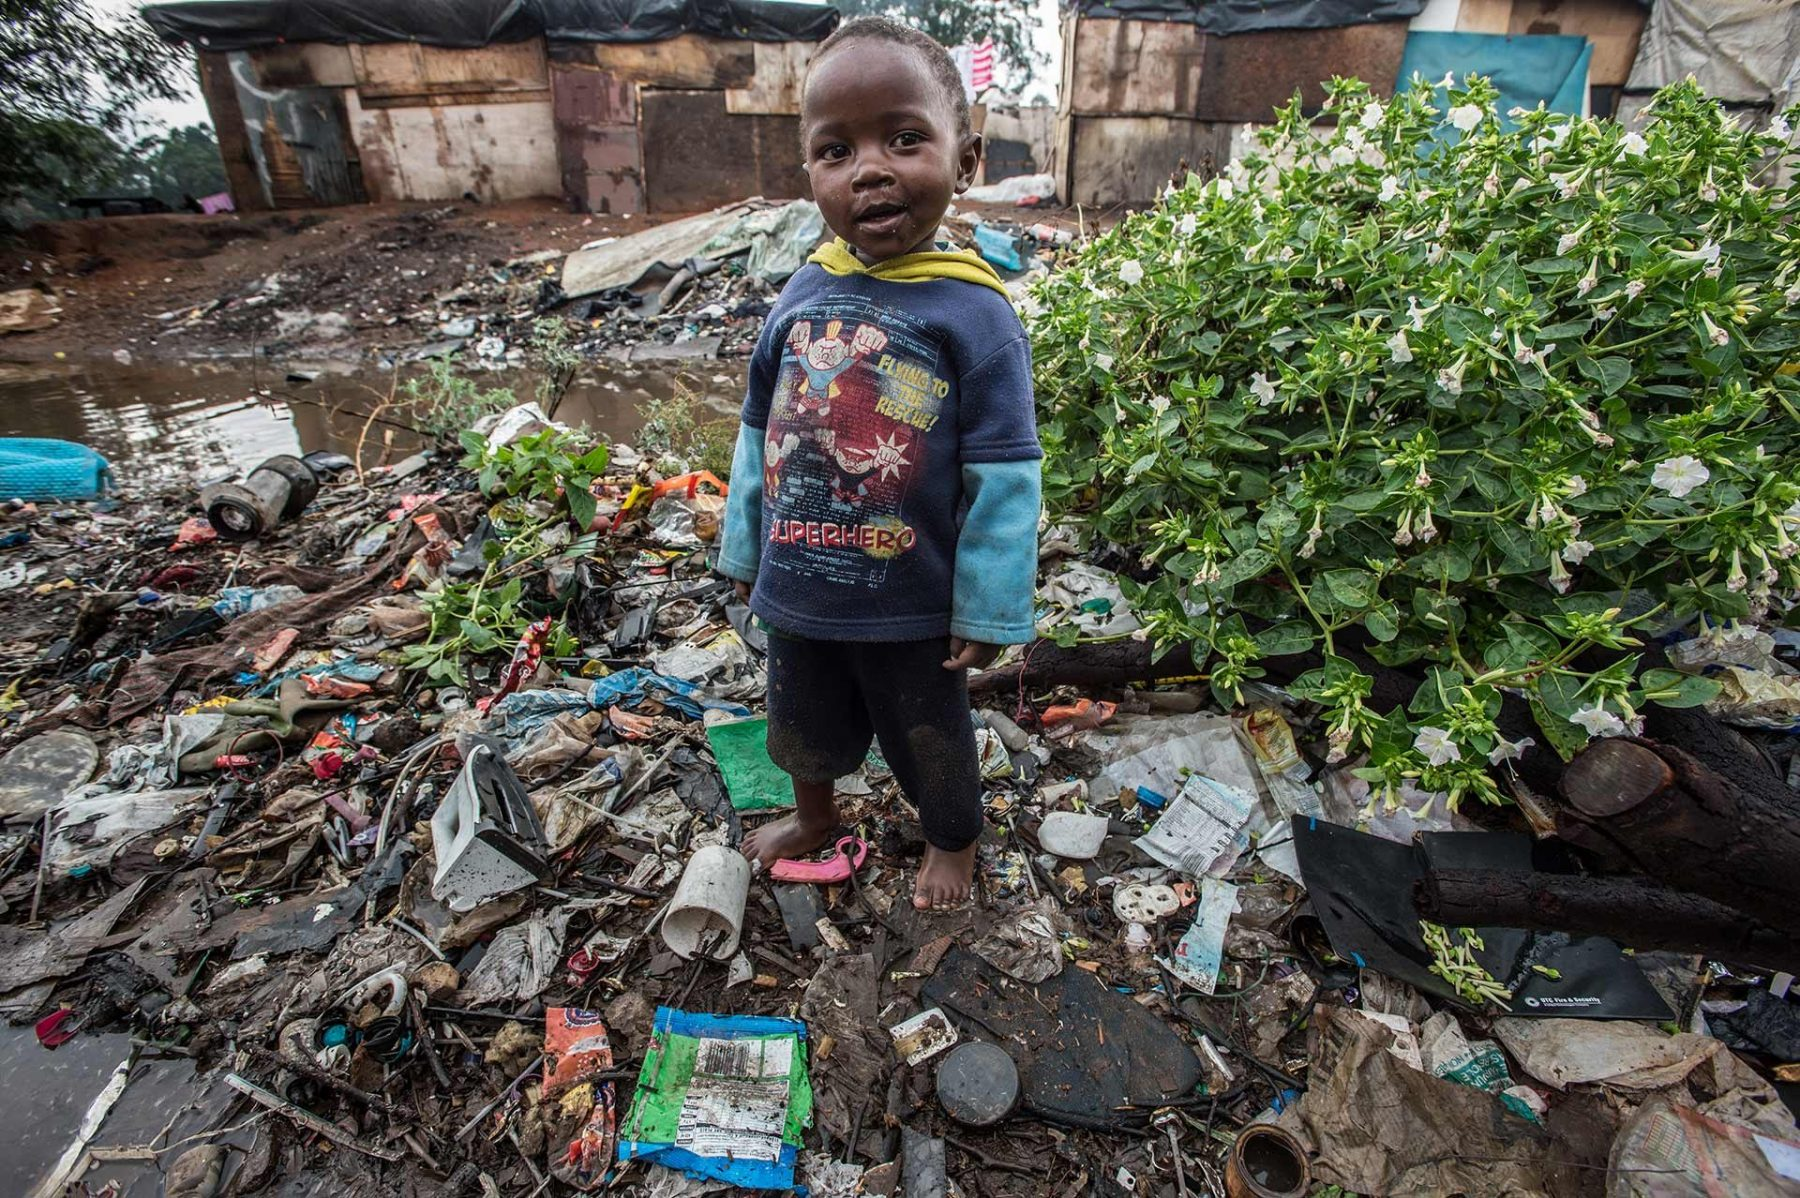 A young boy in his superhero shirt at the Randfontein municipal dumping site in Johannesburg. South Africa.